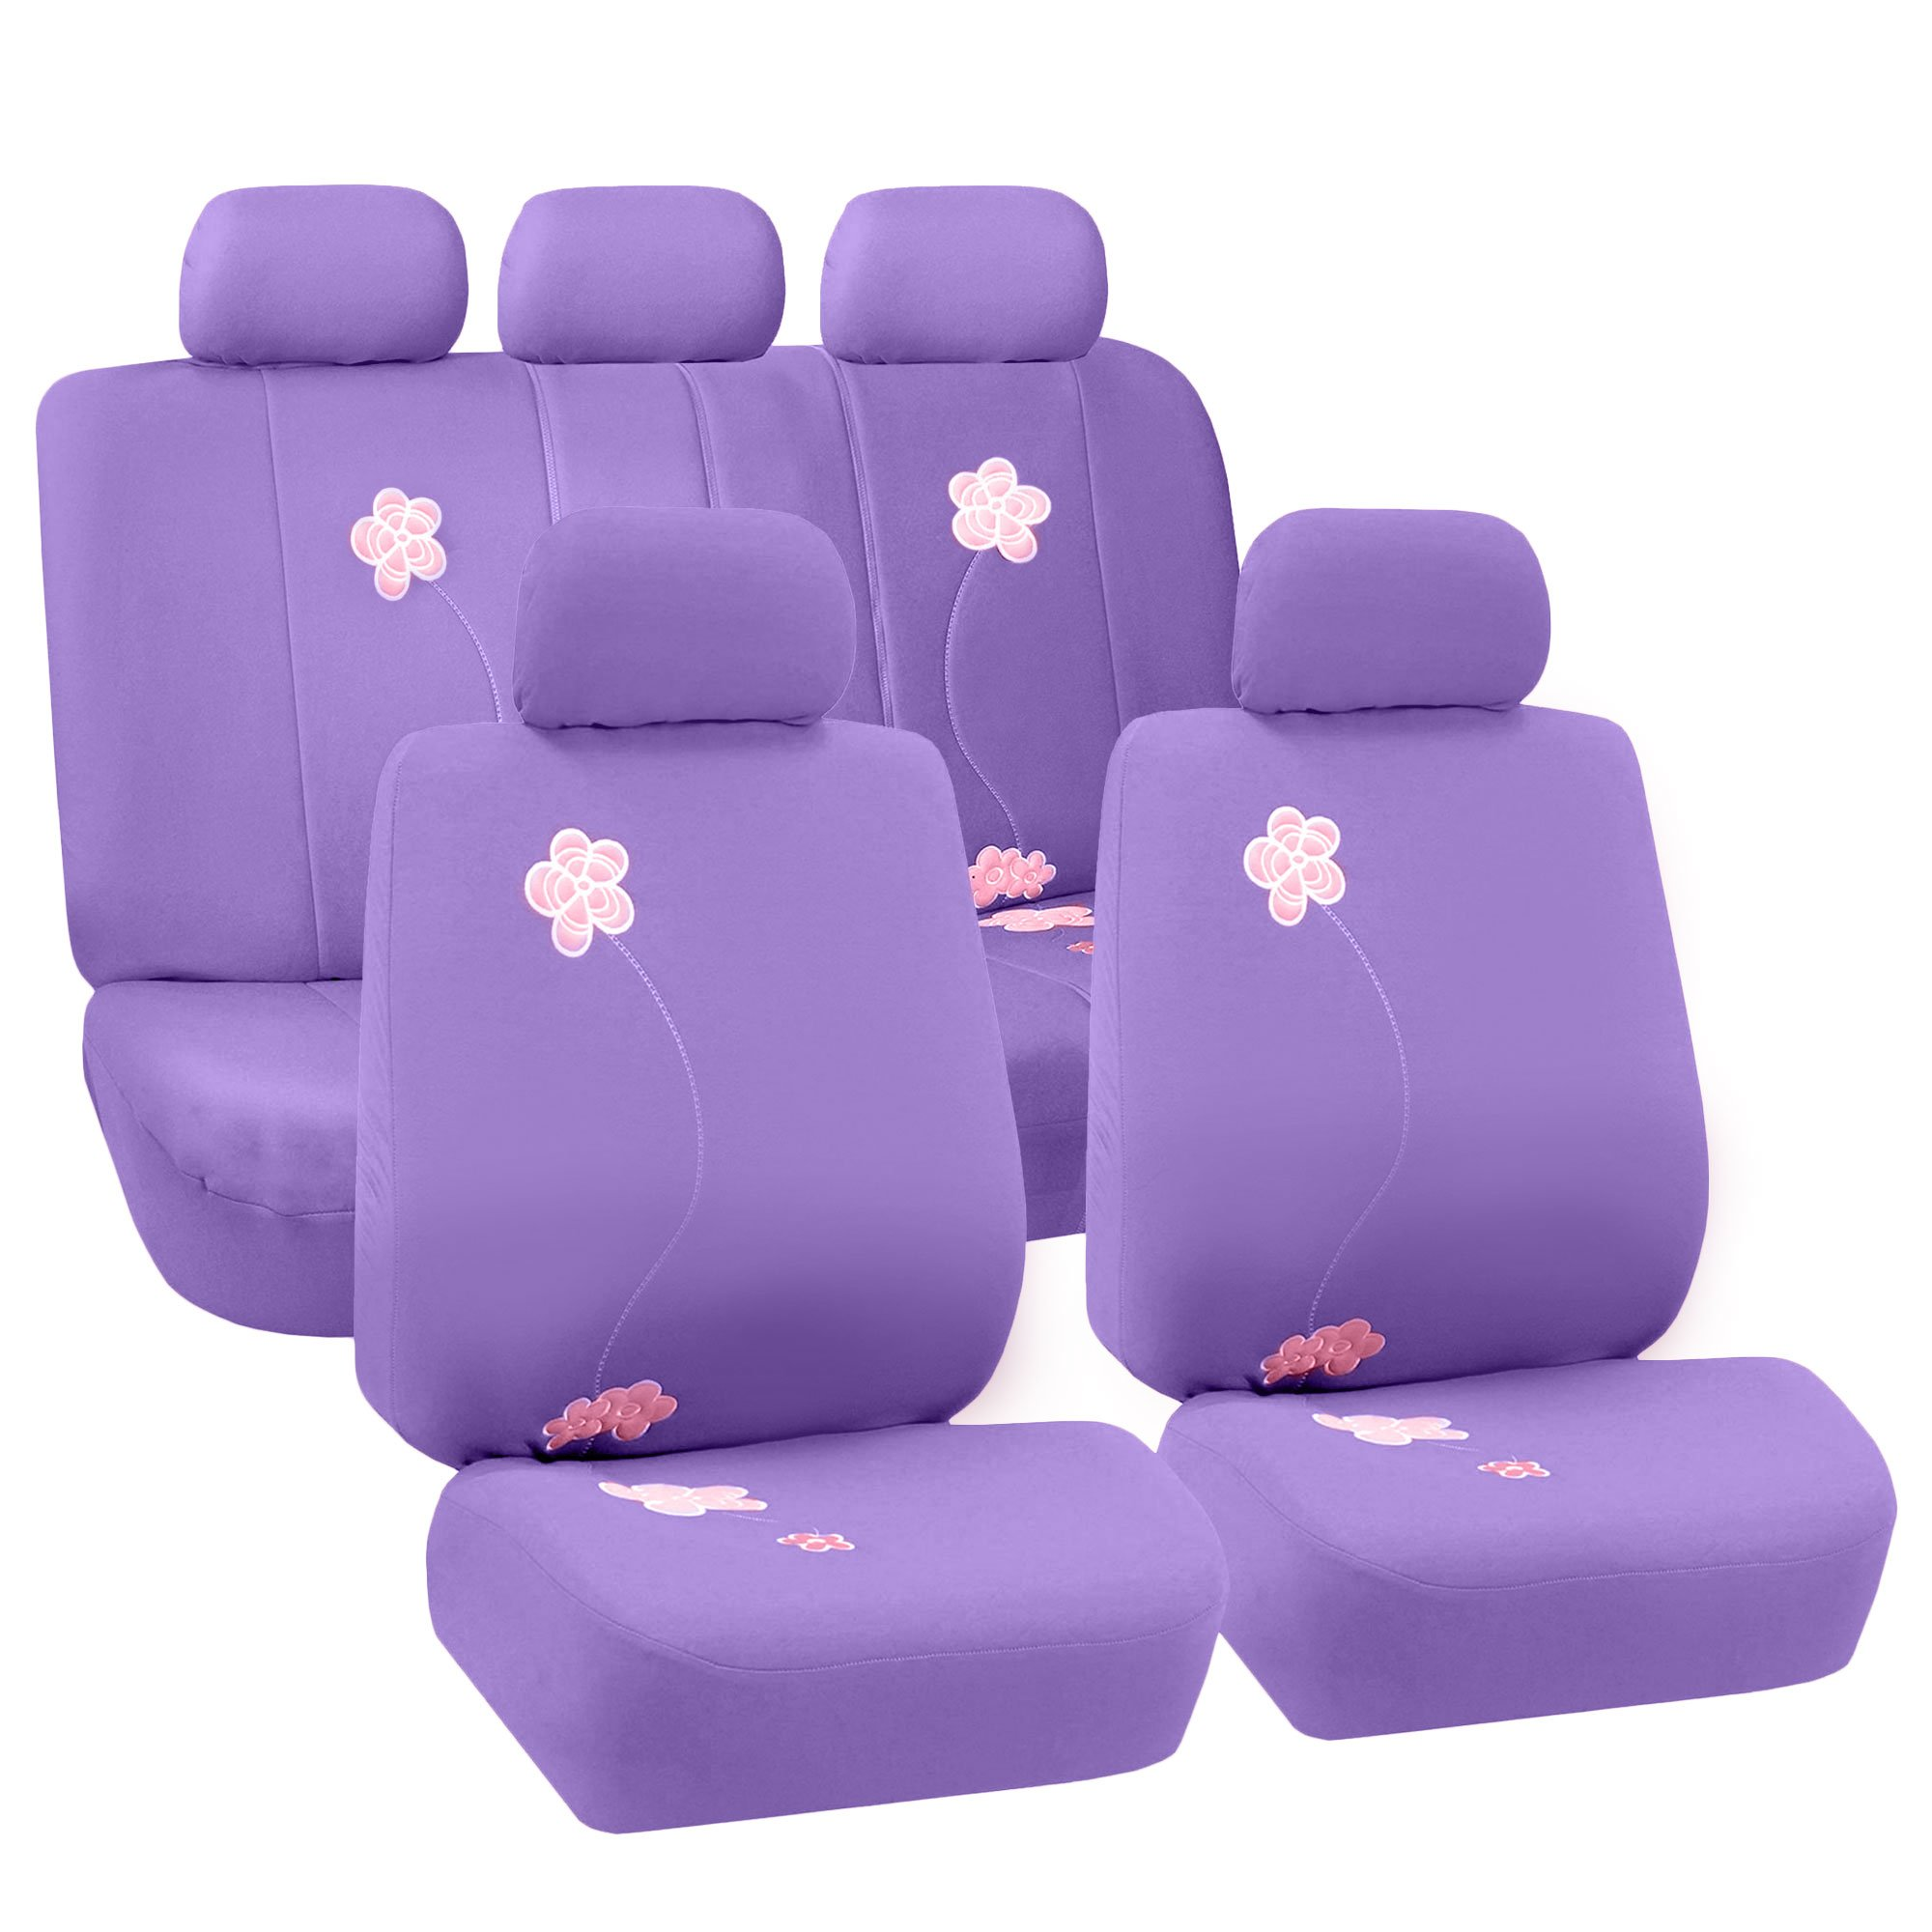 FH Group Universal Fit Full Set Floral Embroidery Design Car Seat Cover, (Purple) (FH-FB053115, Airbag Compatible and Split Bench, Fit Most Car, Truck, SUV, or Van) by FH Group